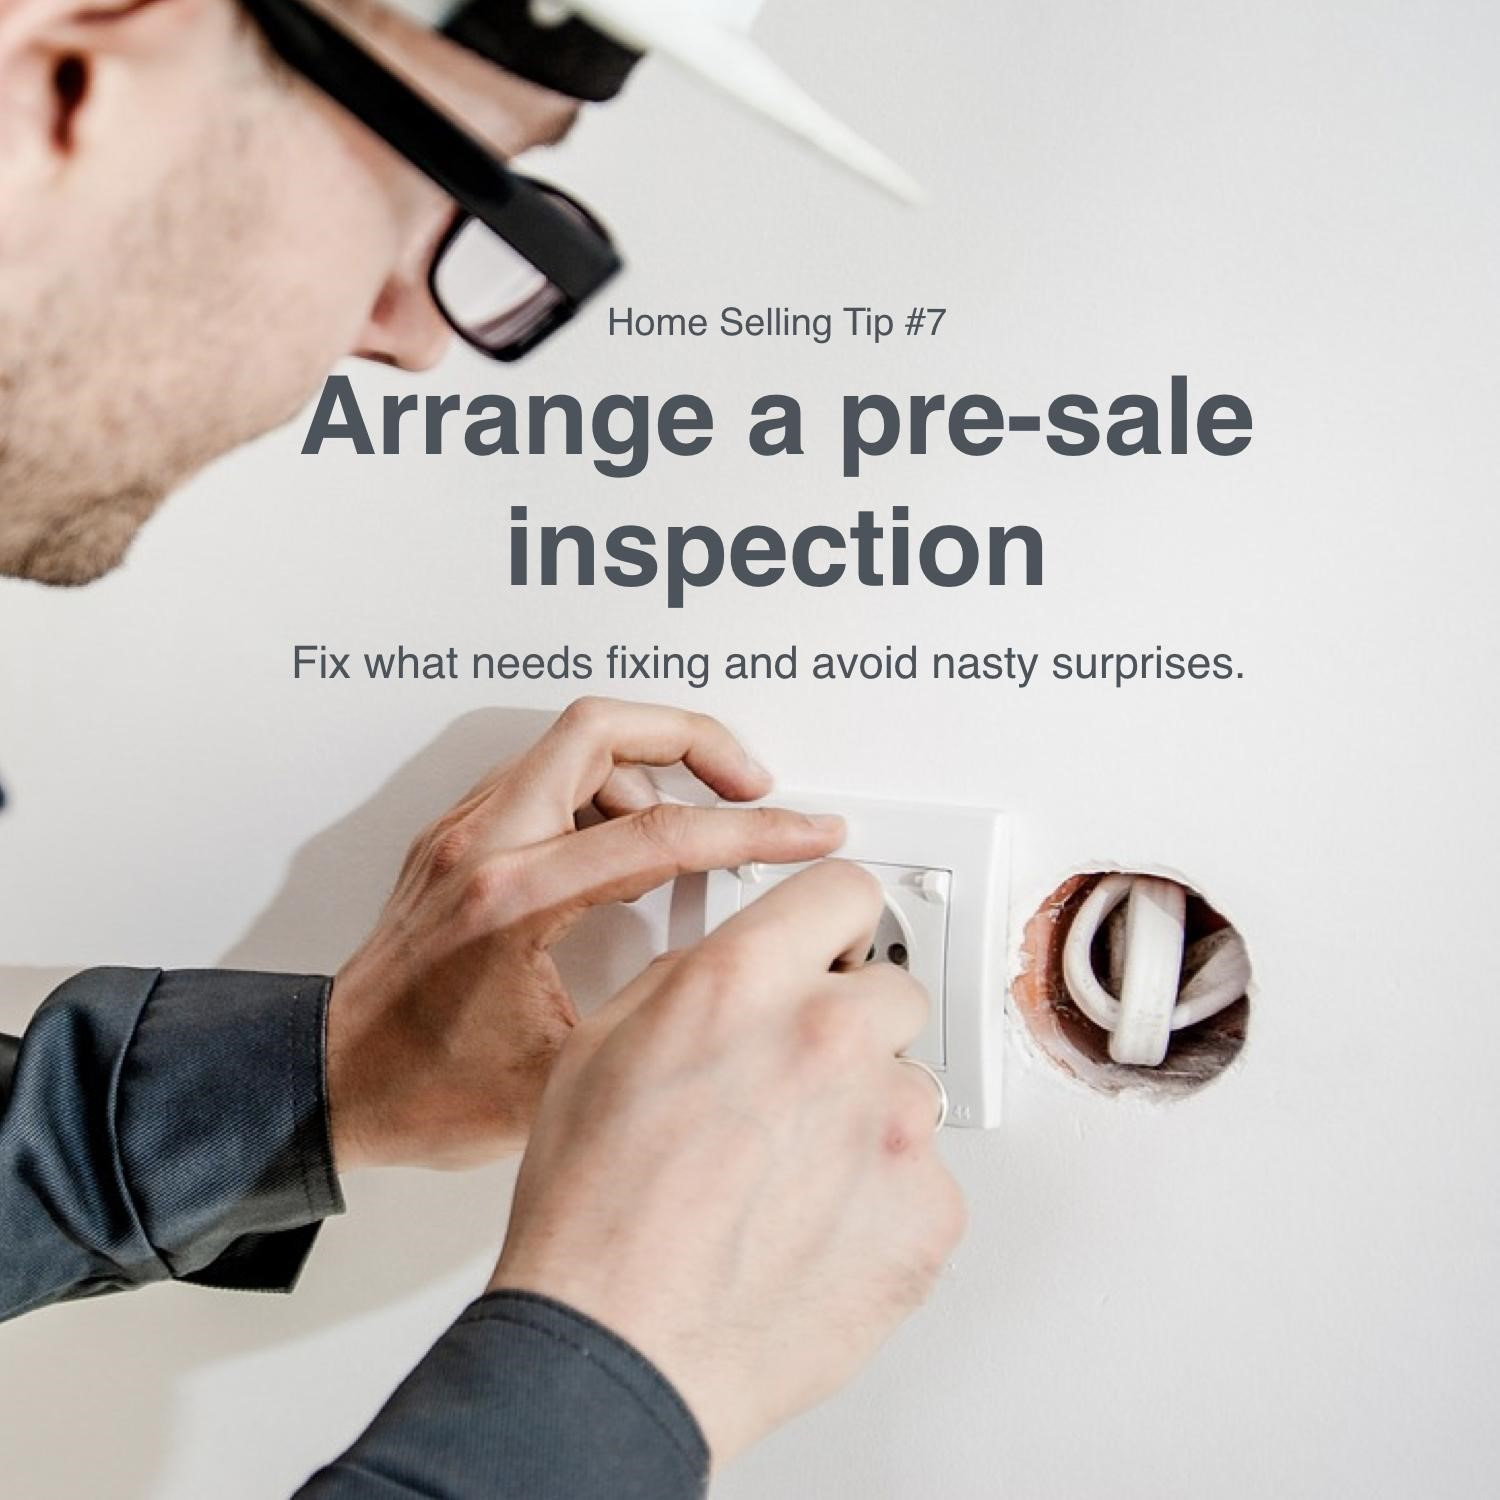 Home Selling Tip #7: Pre-Market Inspections